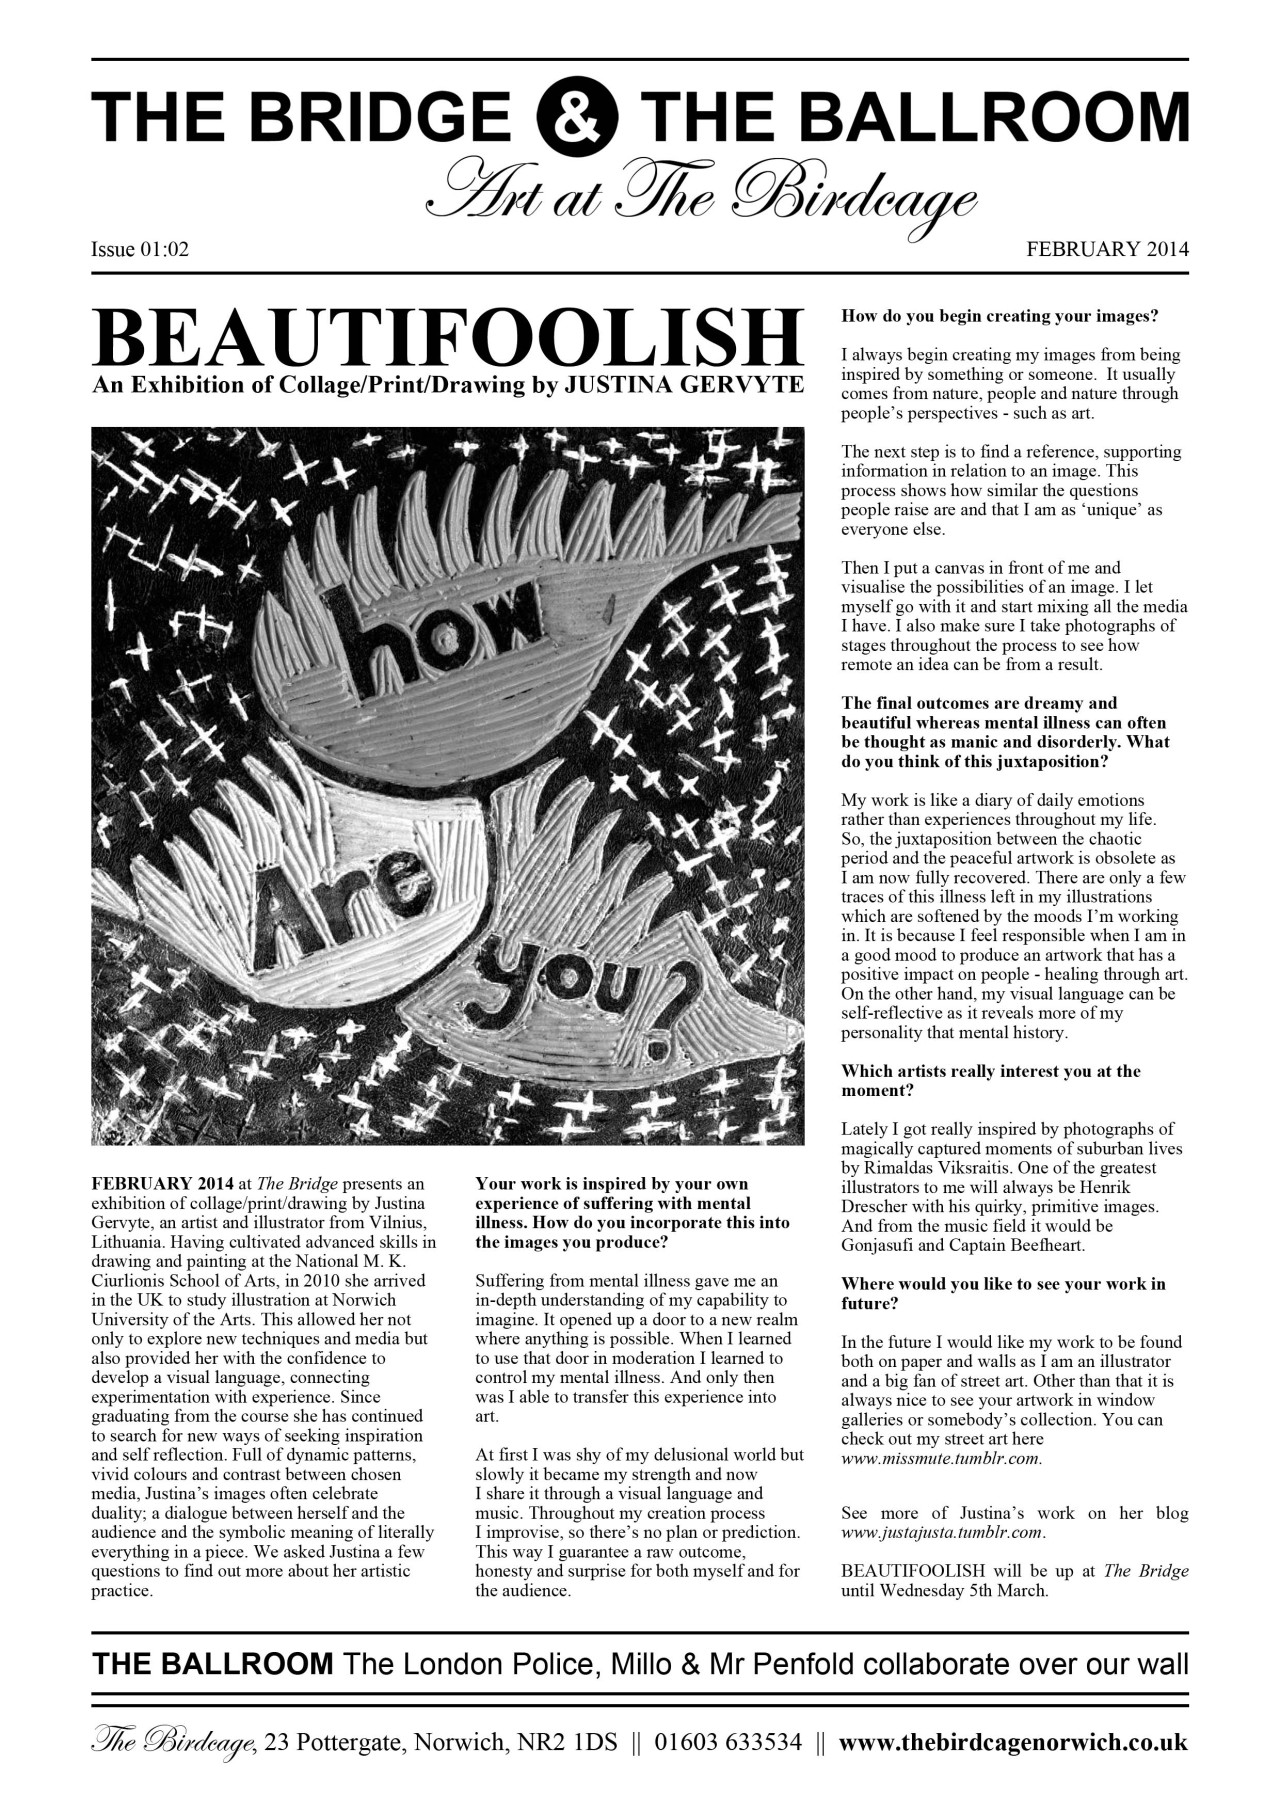 As part of our monthly programme of art exhibitions, we are producing an art paper in conjunction with the current show so that we can give you more of an insight into the minds of our artists! We asked  Justina Gervyte  a few questions for February's edition. You can read another interview with her here on   Neverlazy  .